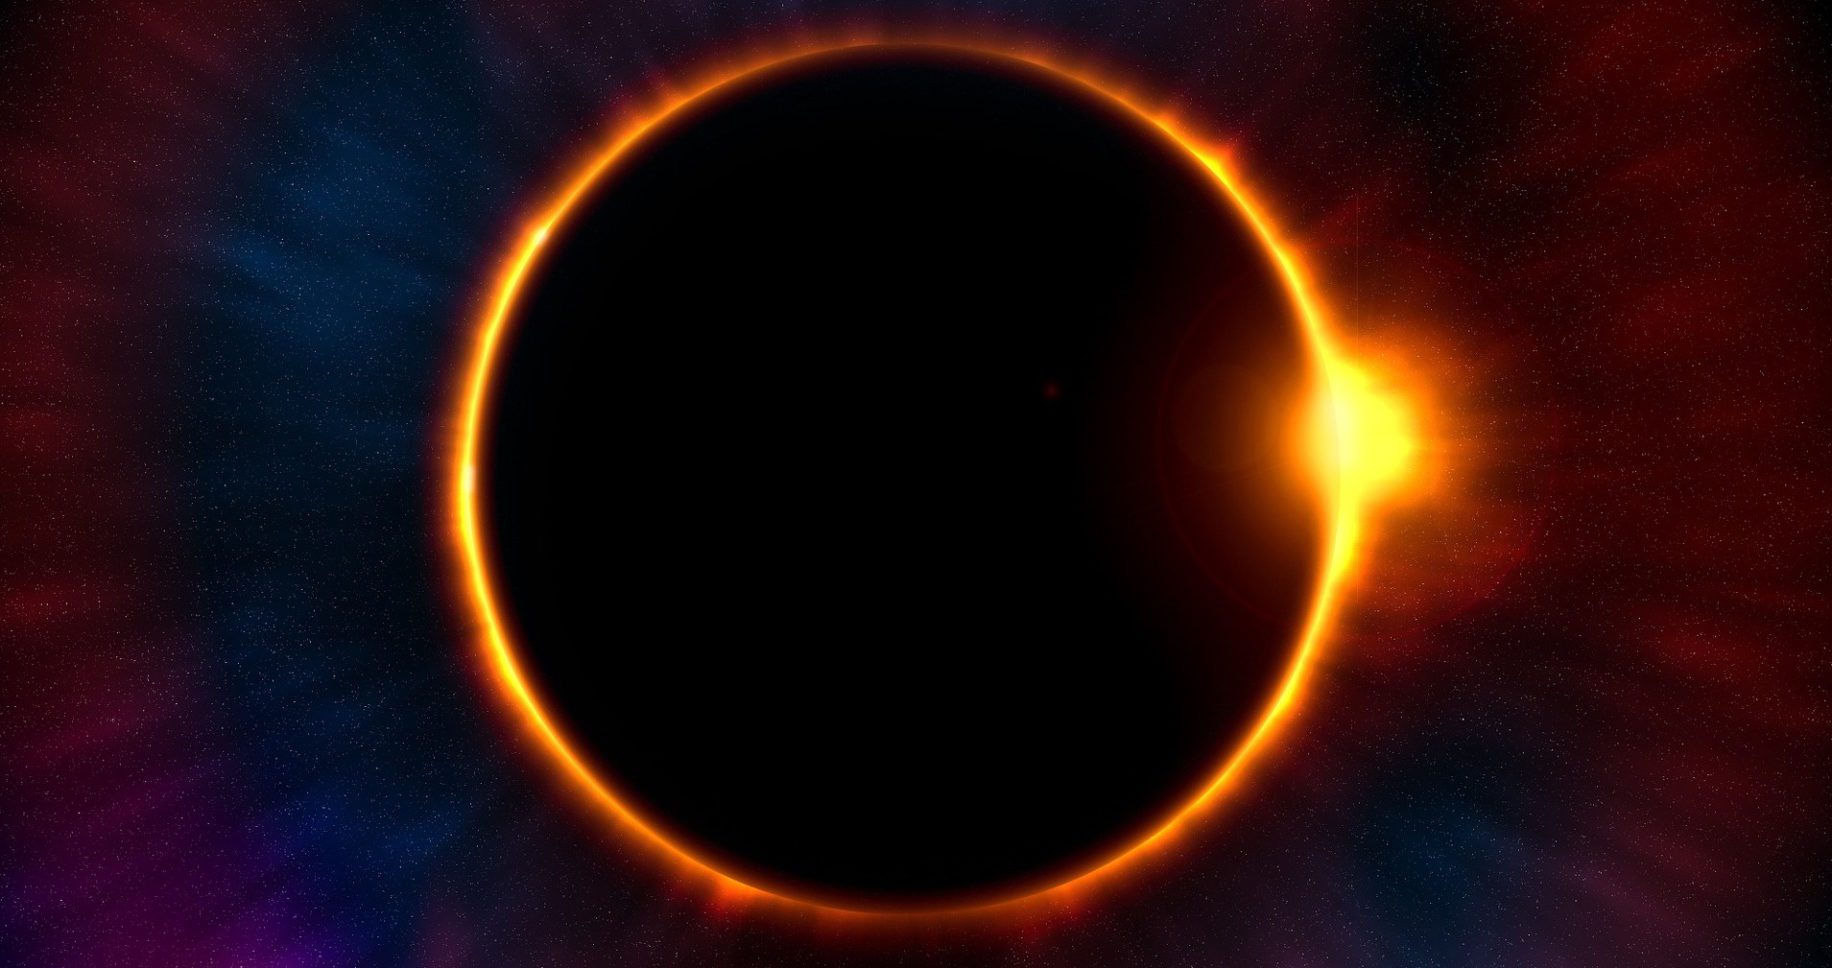 14 Songs to Add to Your Solar Eclipse Playlist